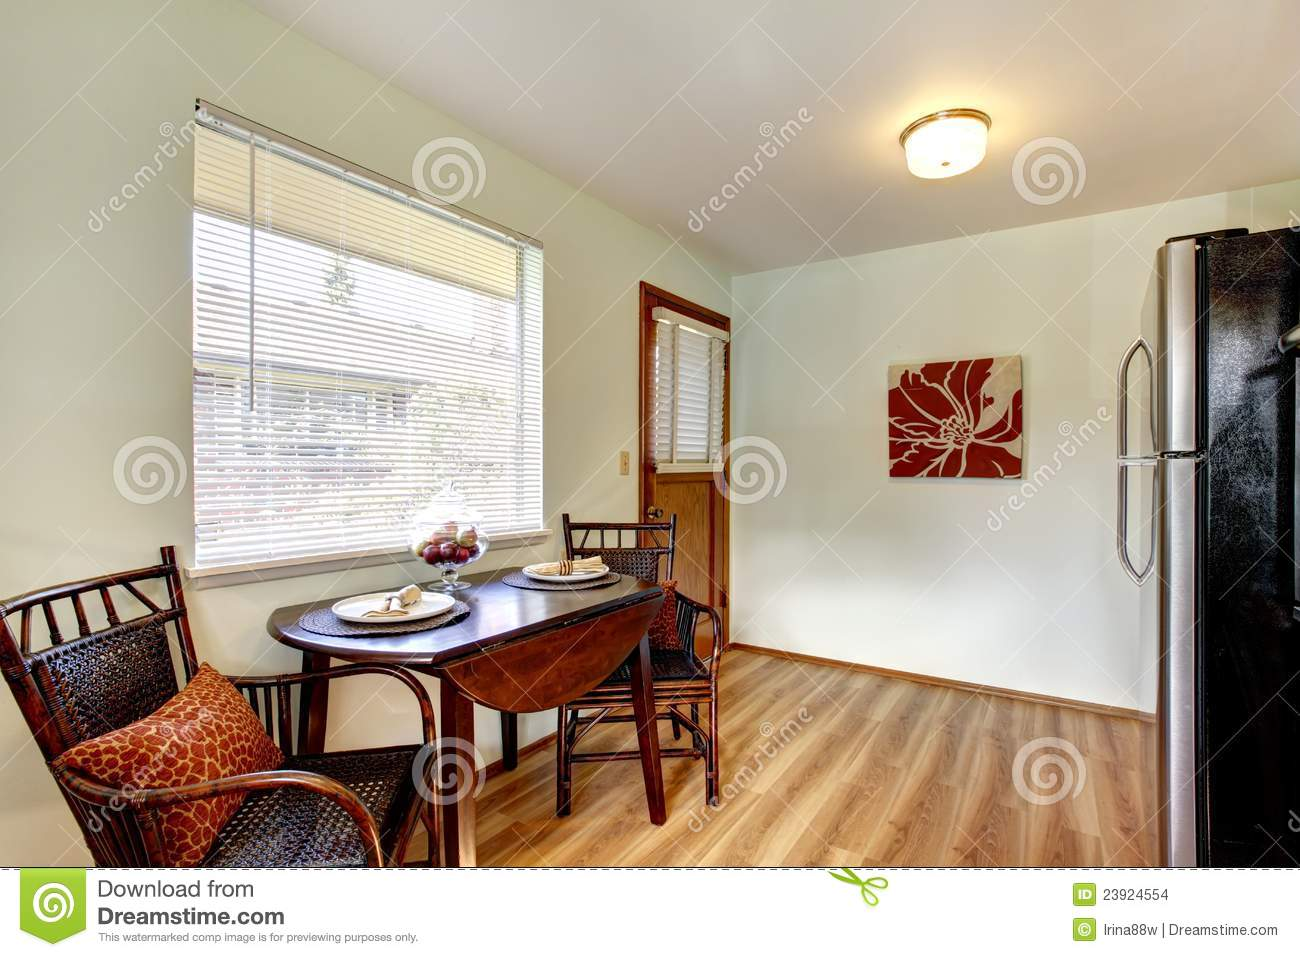 small kitchen eating table area interior stock images image kitchen area eat kitchen designs update kitchen wall eat kitchen